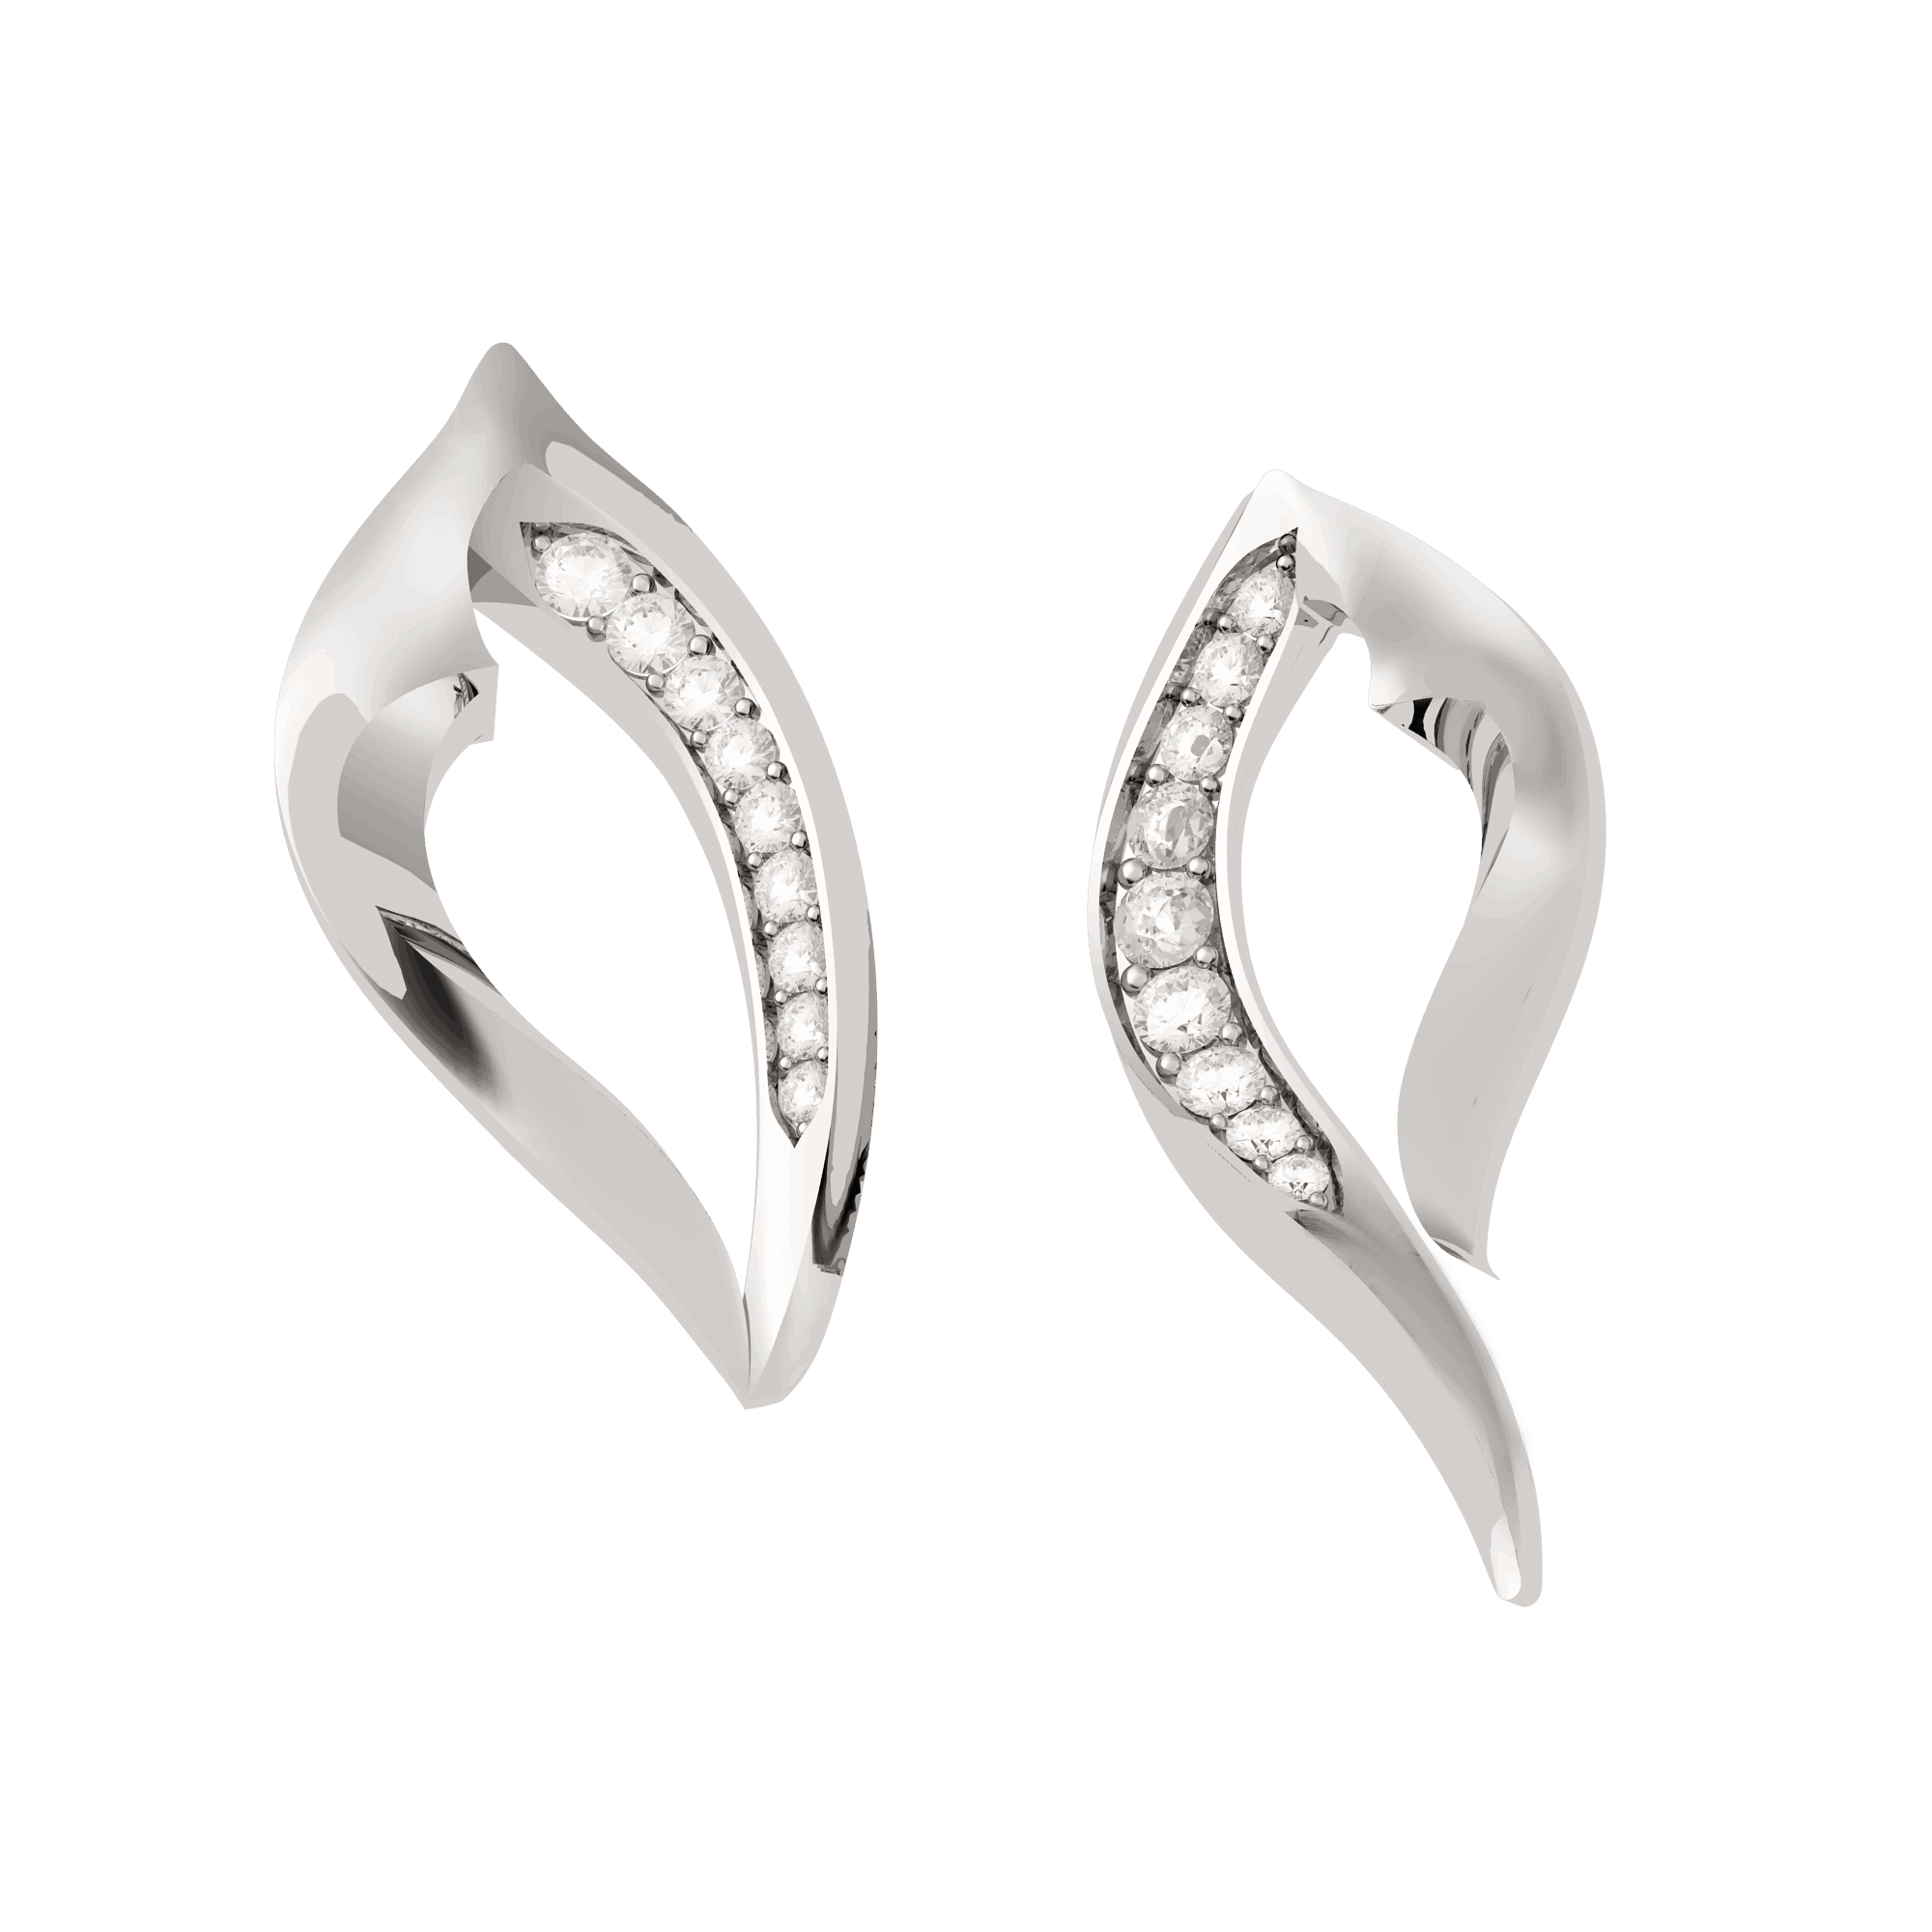 VINEA001 - Vinyasa Natural White Gold  Assymetric Ear Studs